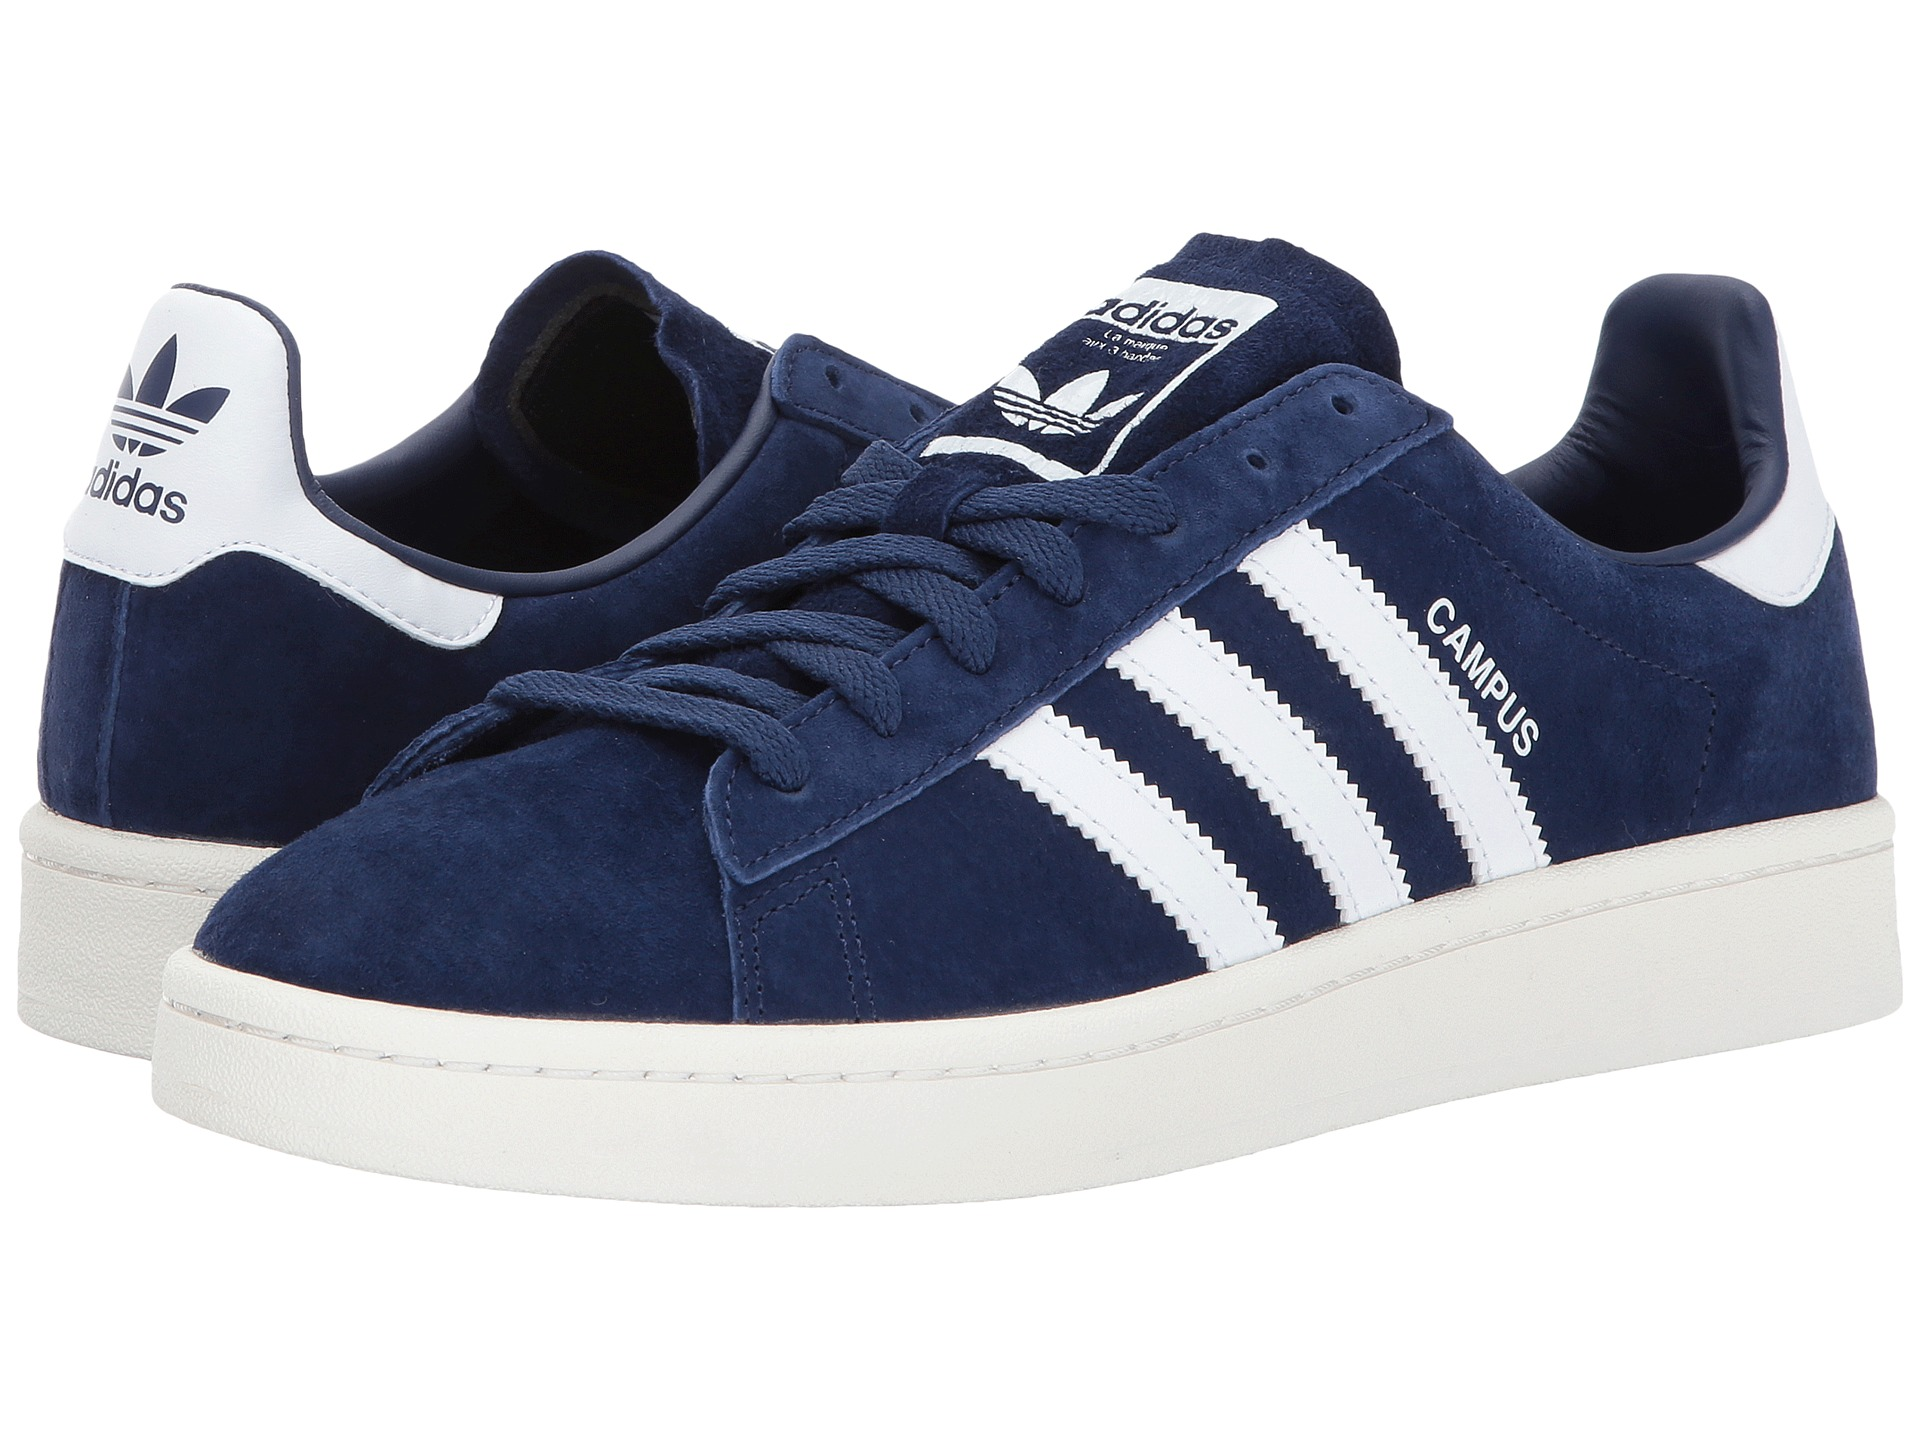 adidas Originals Campus at 6pm.com